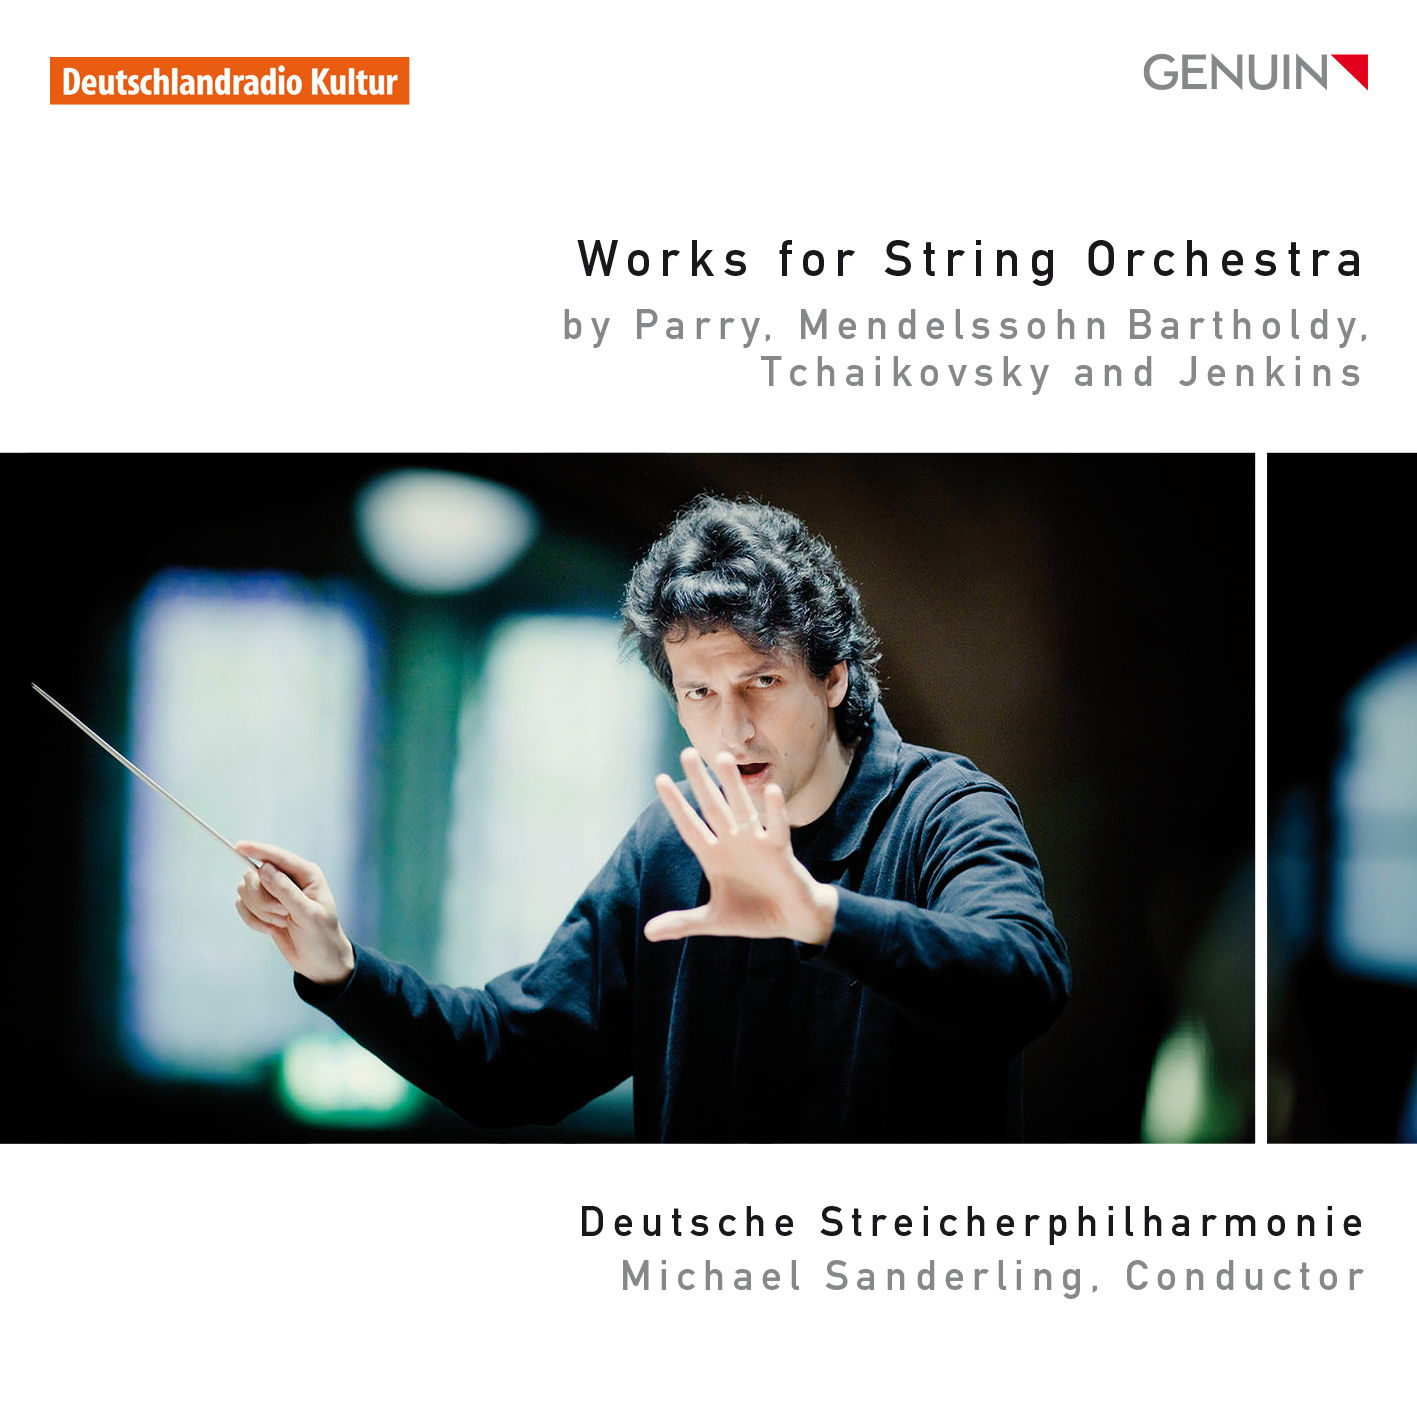 Souvenir de Florence, Op. 70, TH 118 (Version for String Orchestra), Souvenir de Florence, Op. 70, TH 118 (Version for String Orchestra): III. Allegretto moderato